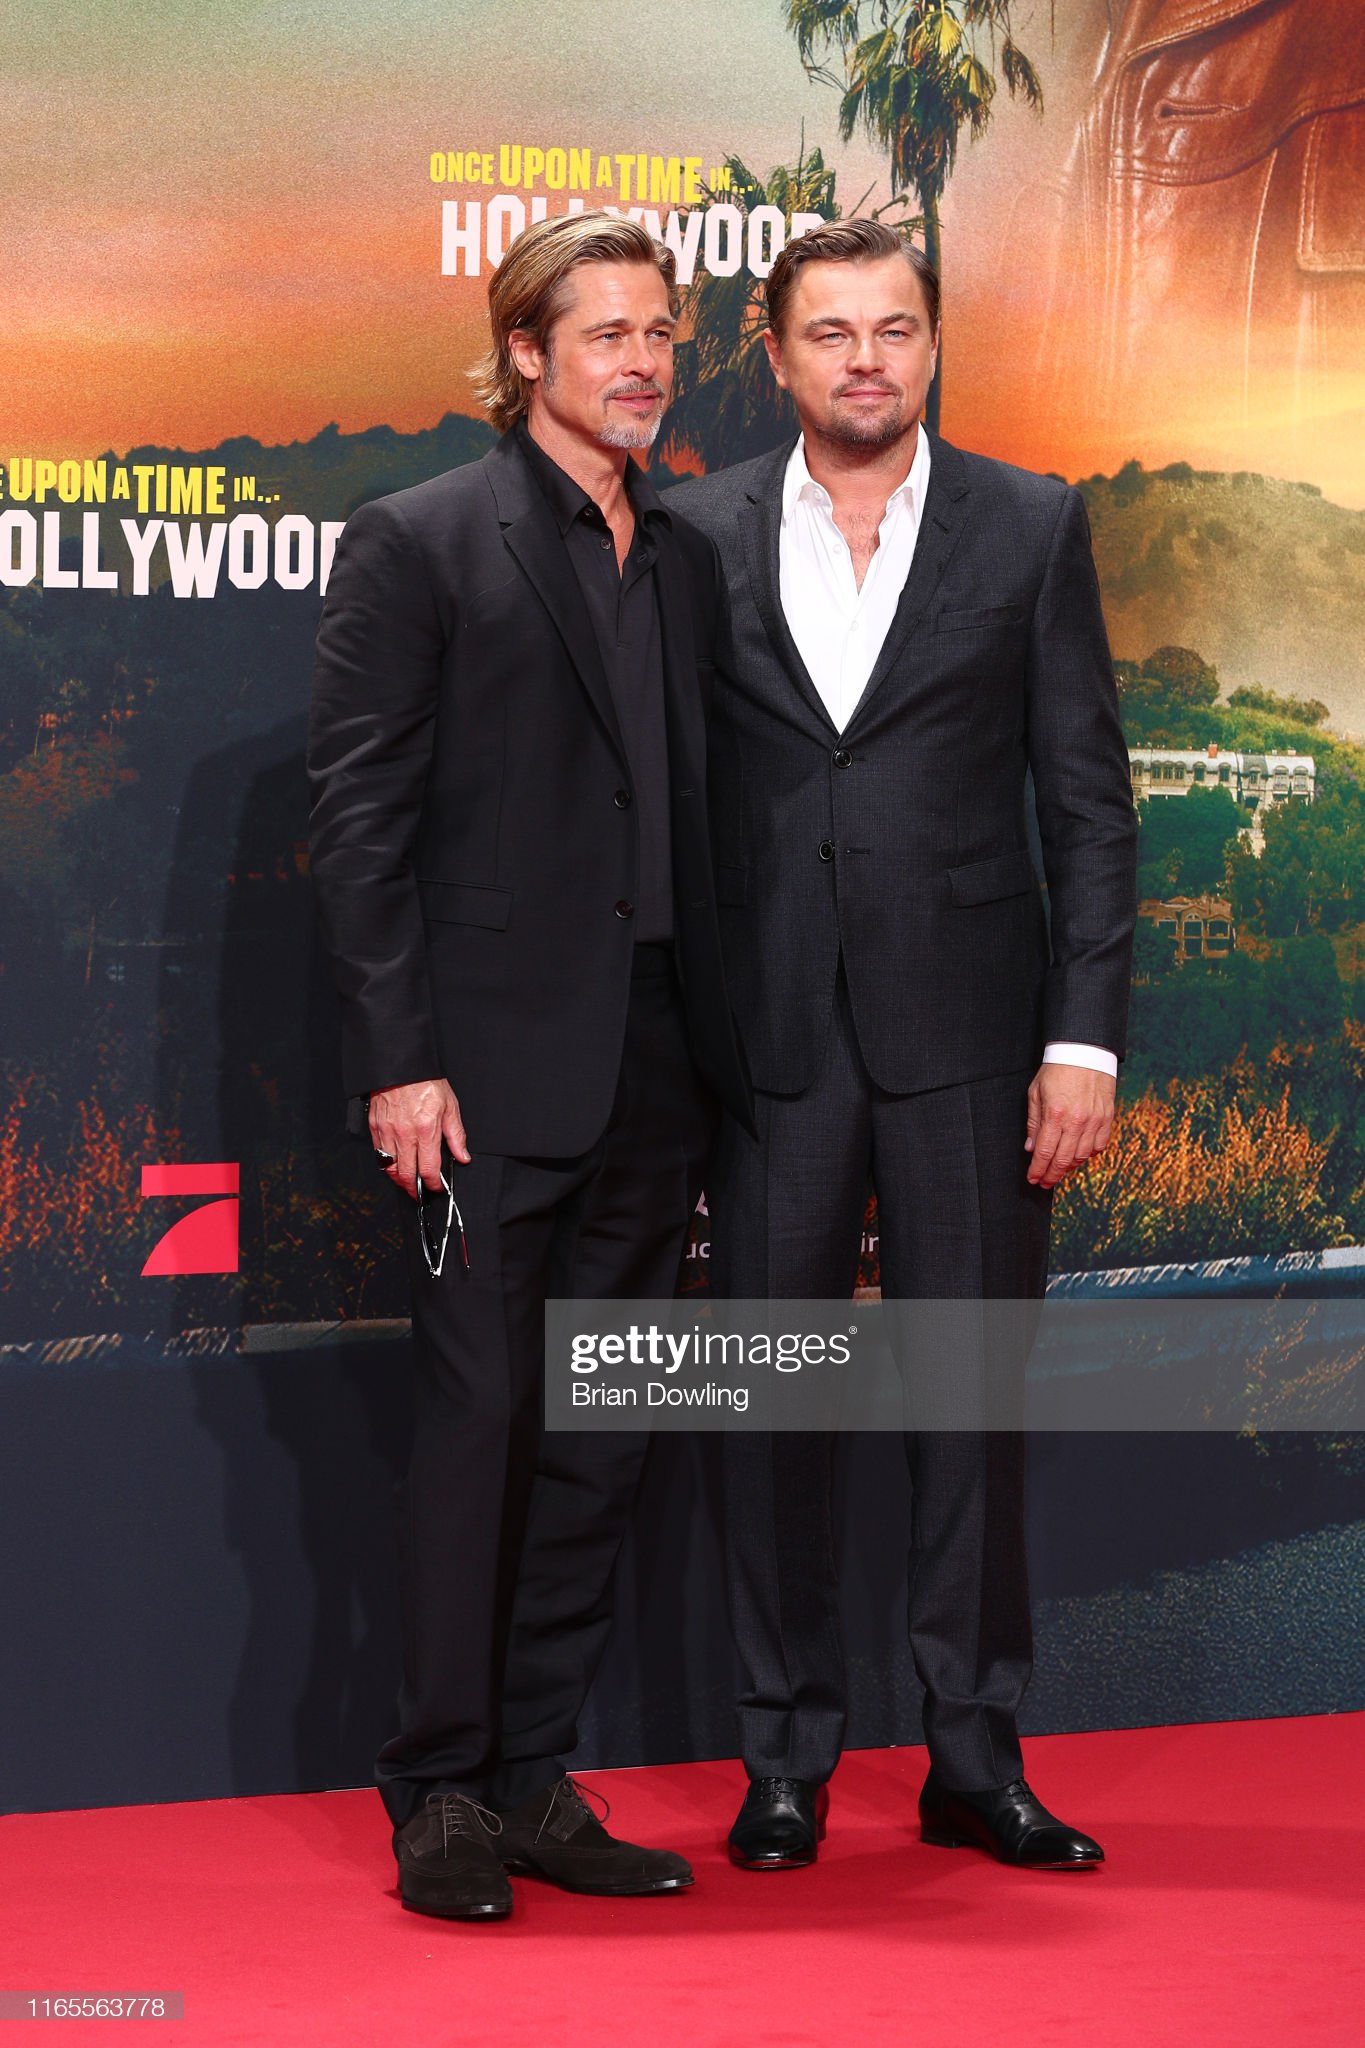 ¿Cuánto mide Brad Pitt? - Altura - Real height - Página 3 Brad-pitt-and-leonardo-dicaprio-attend-the-premiere-of-once-upon-a-picture-id1165563778?s=2048x2048